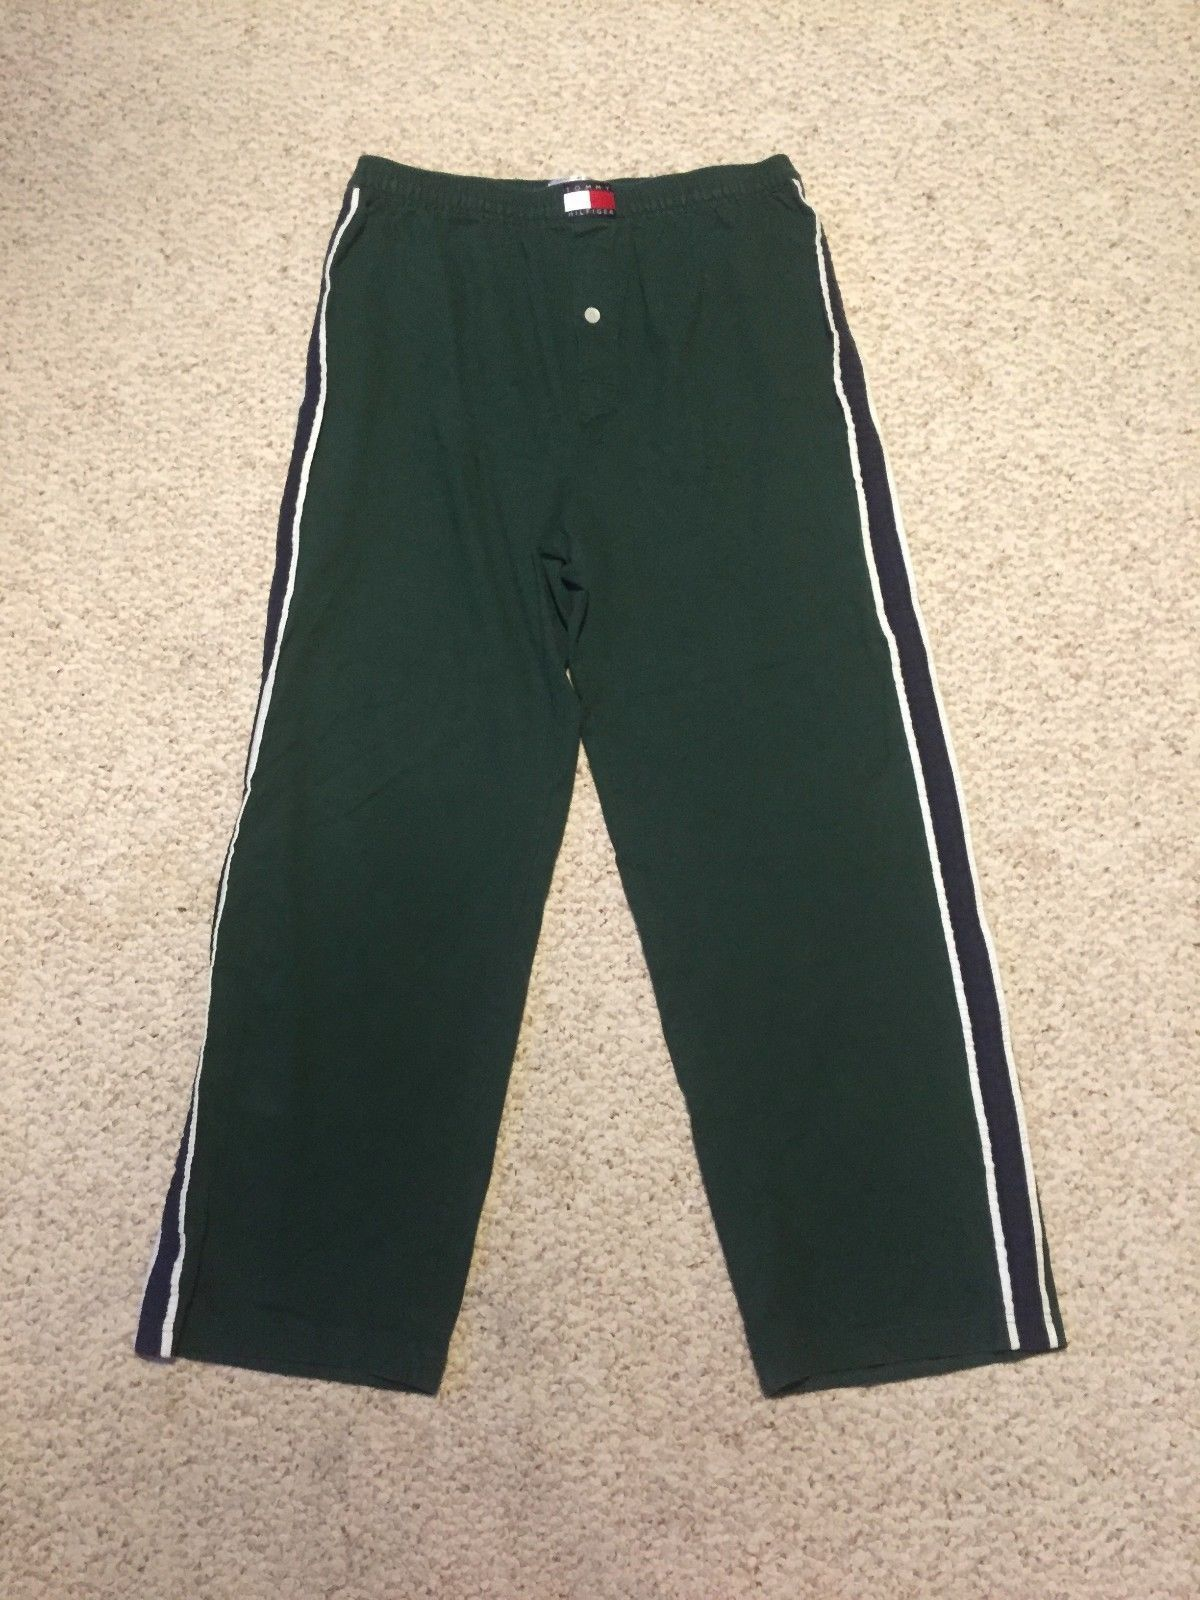 XL Tommy Hilfiger Green Sleepwear Sweat Pants